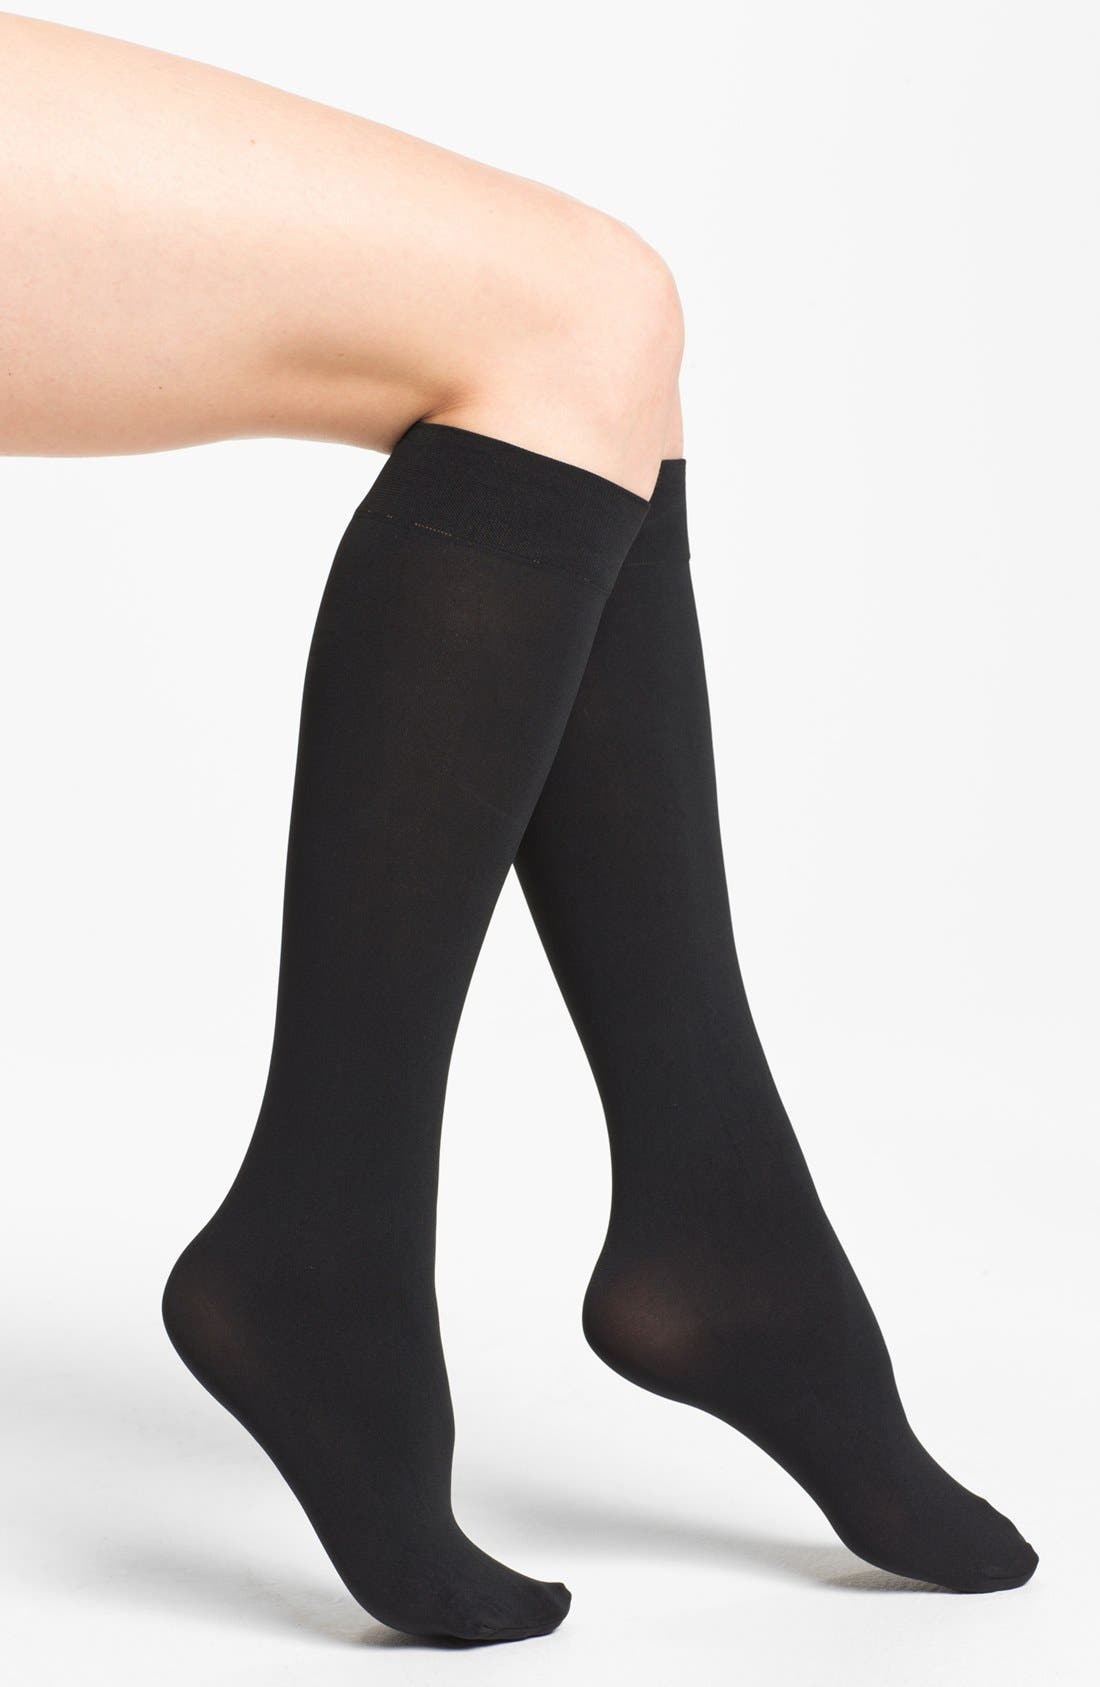 Alternate Image 1 Selected - DKNY Opaque Microfiber Knee Highs